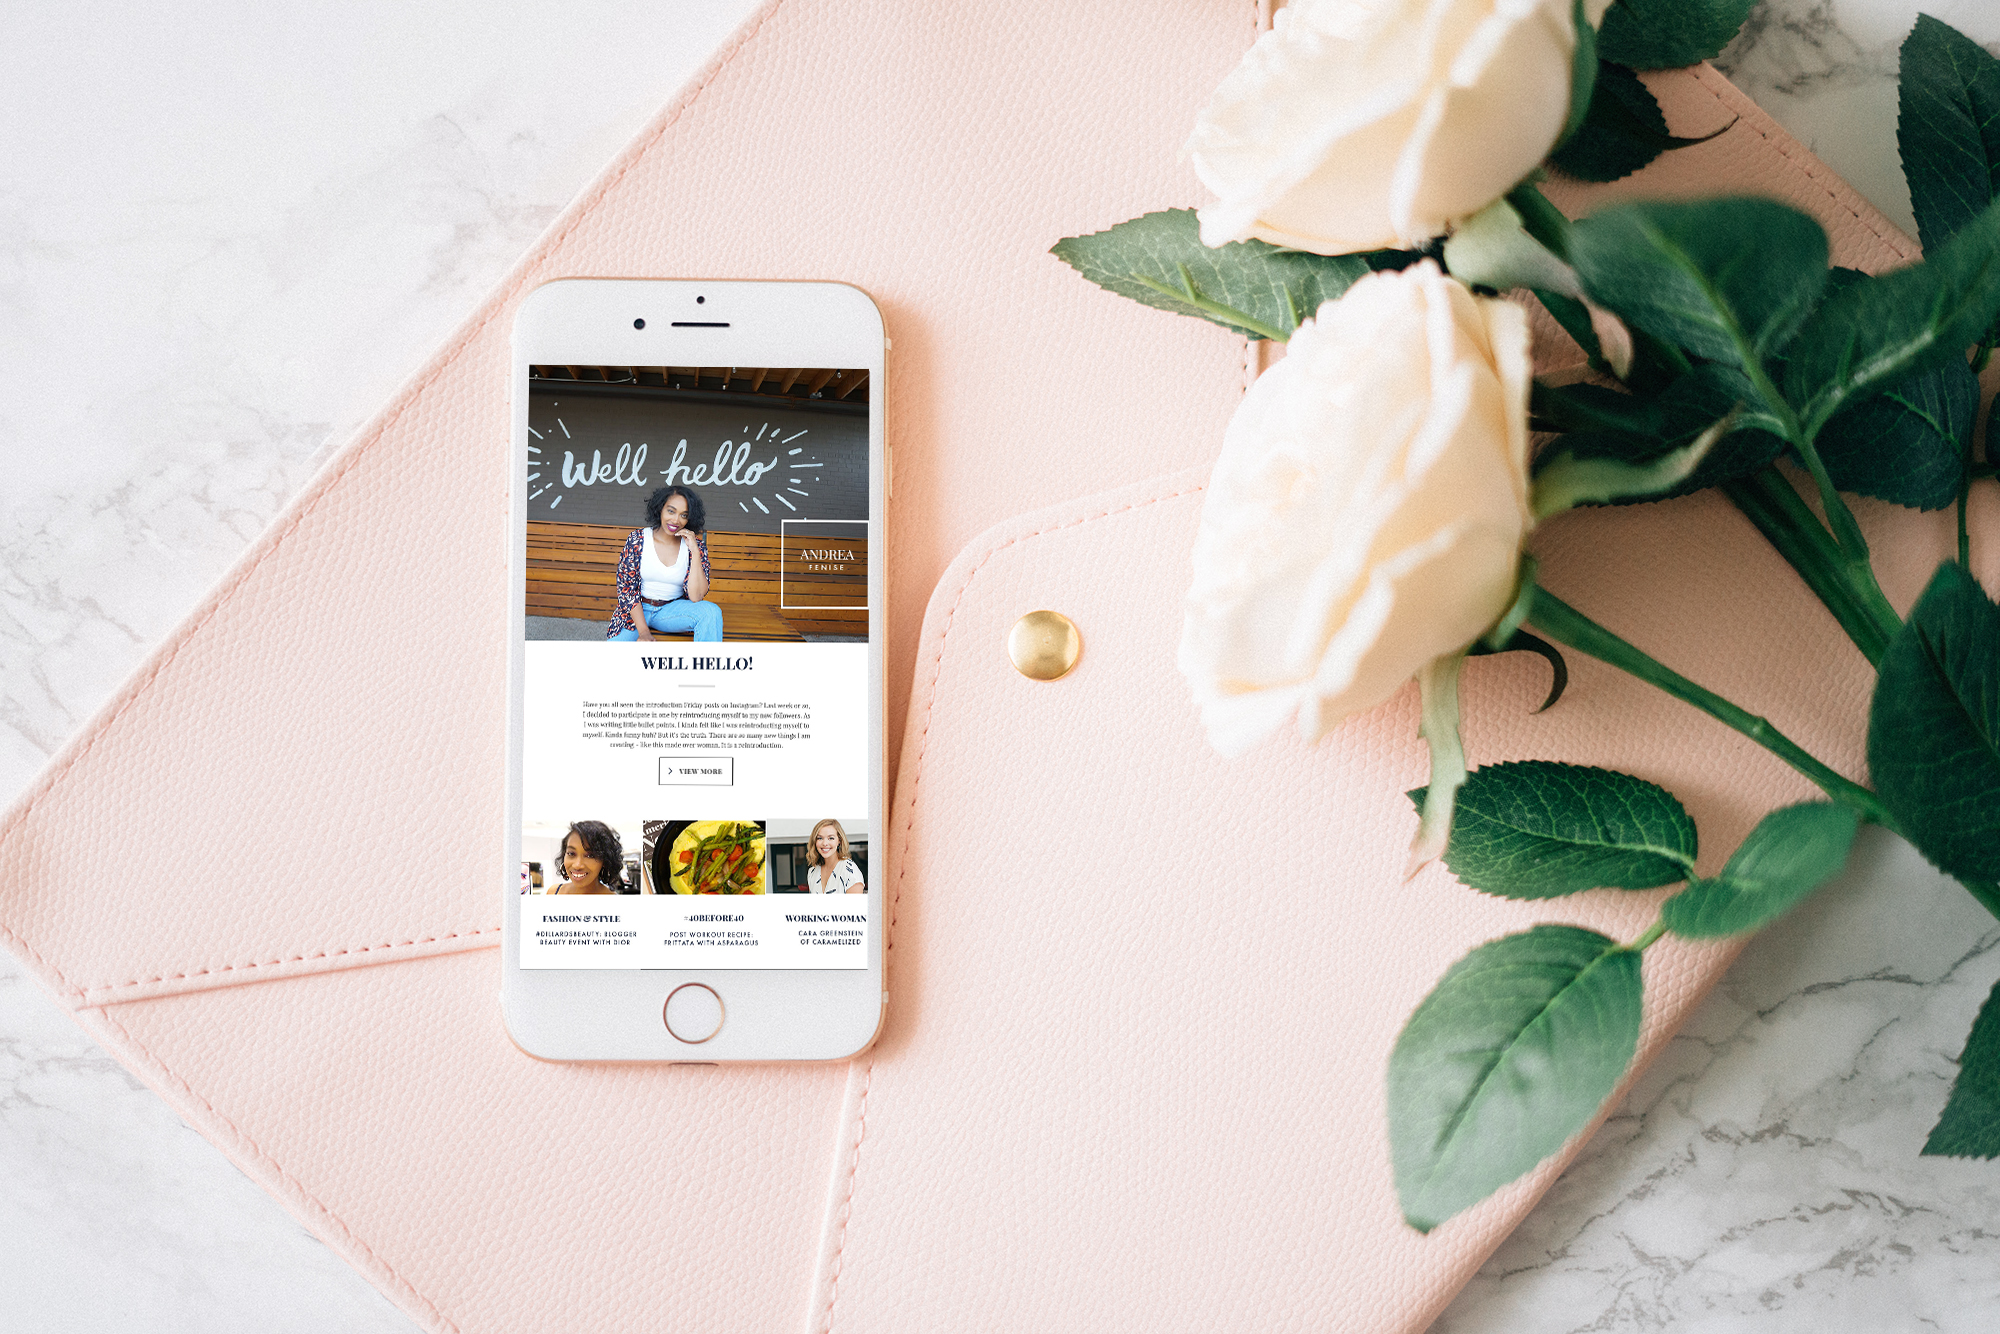 Andrea Fenise Memphis Fashion Blogger and Memphis Parenting Blogger shares newsletter signup